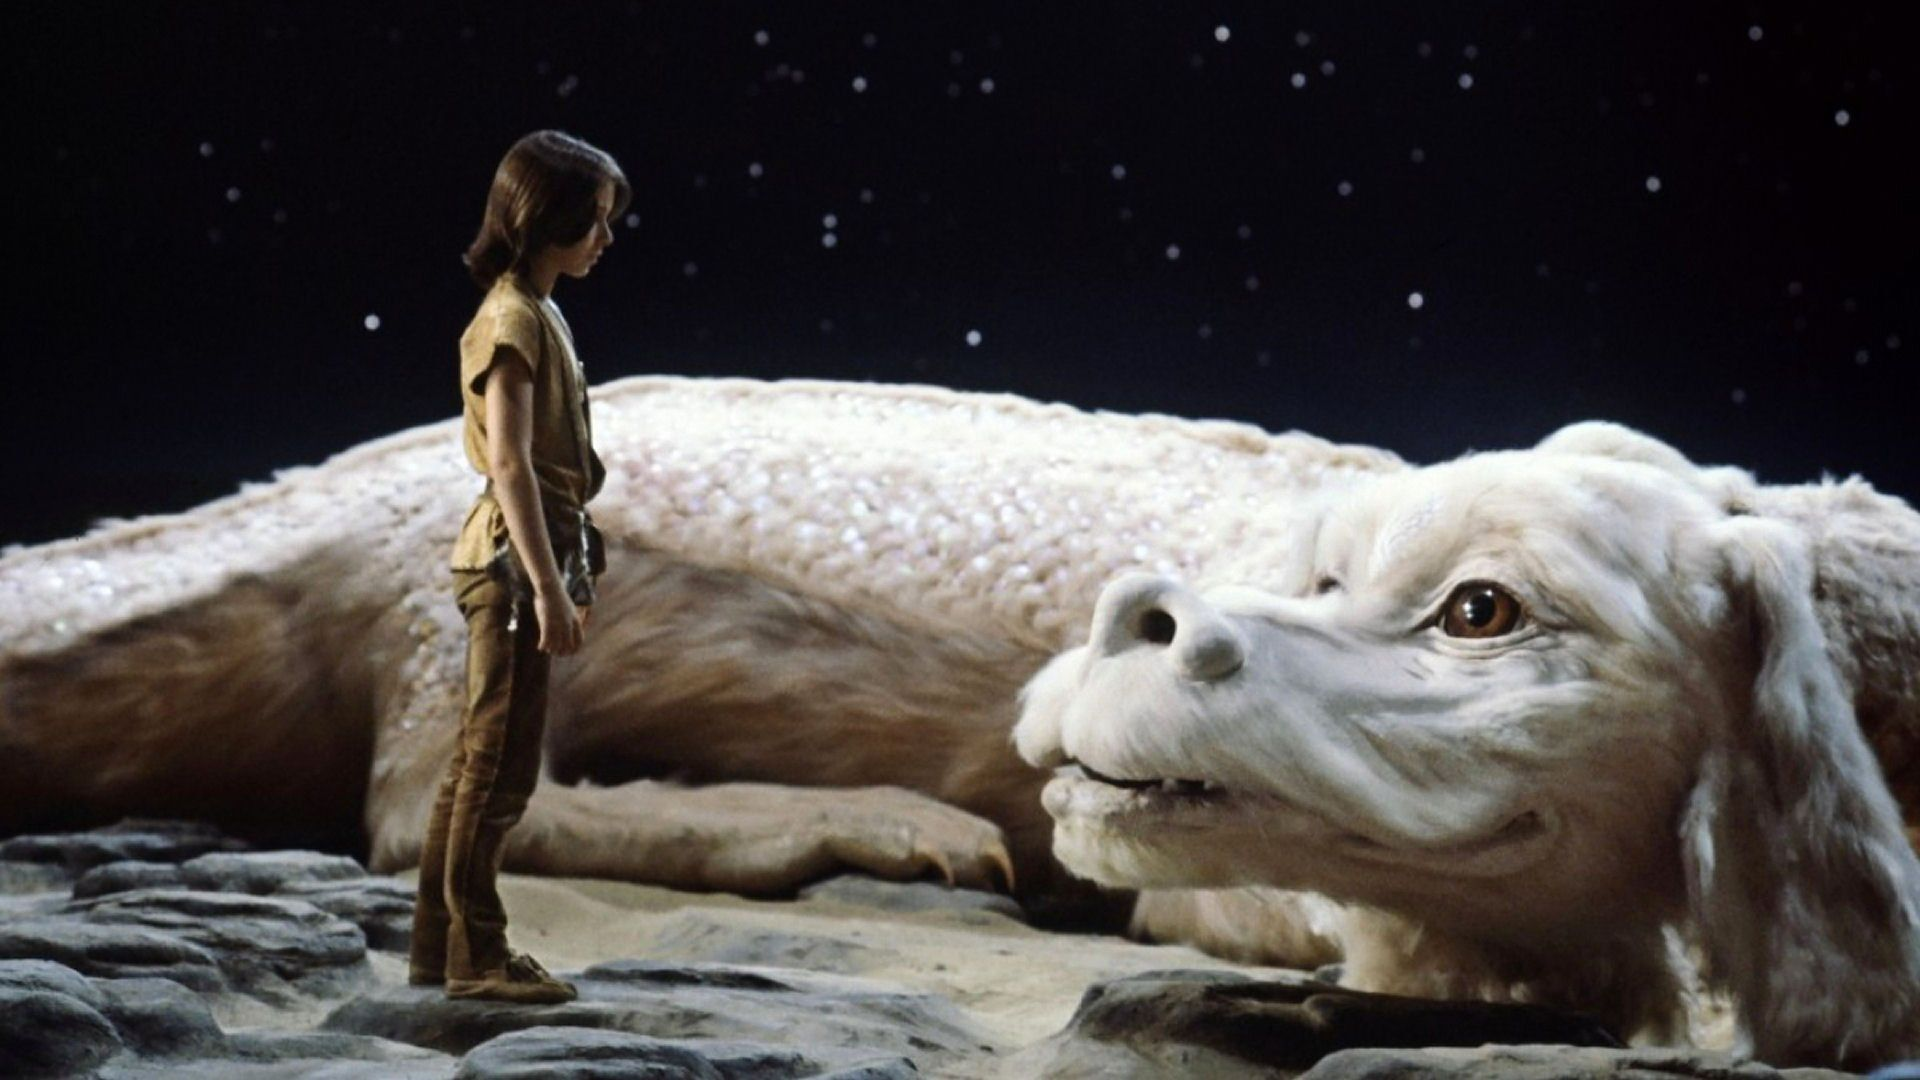 Best 20 Fantasy - Migliori Films - The NeverEnding Story - La Storia Infinita - Die unendliche Geschichte - Fortunadrago - Dog white dragon